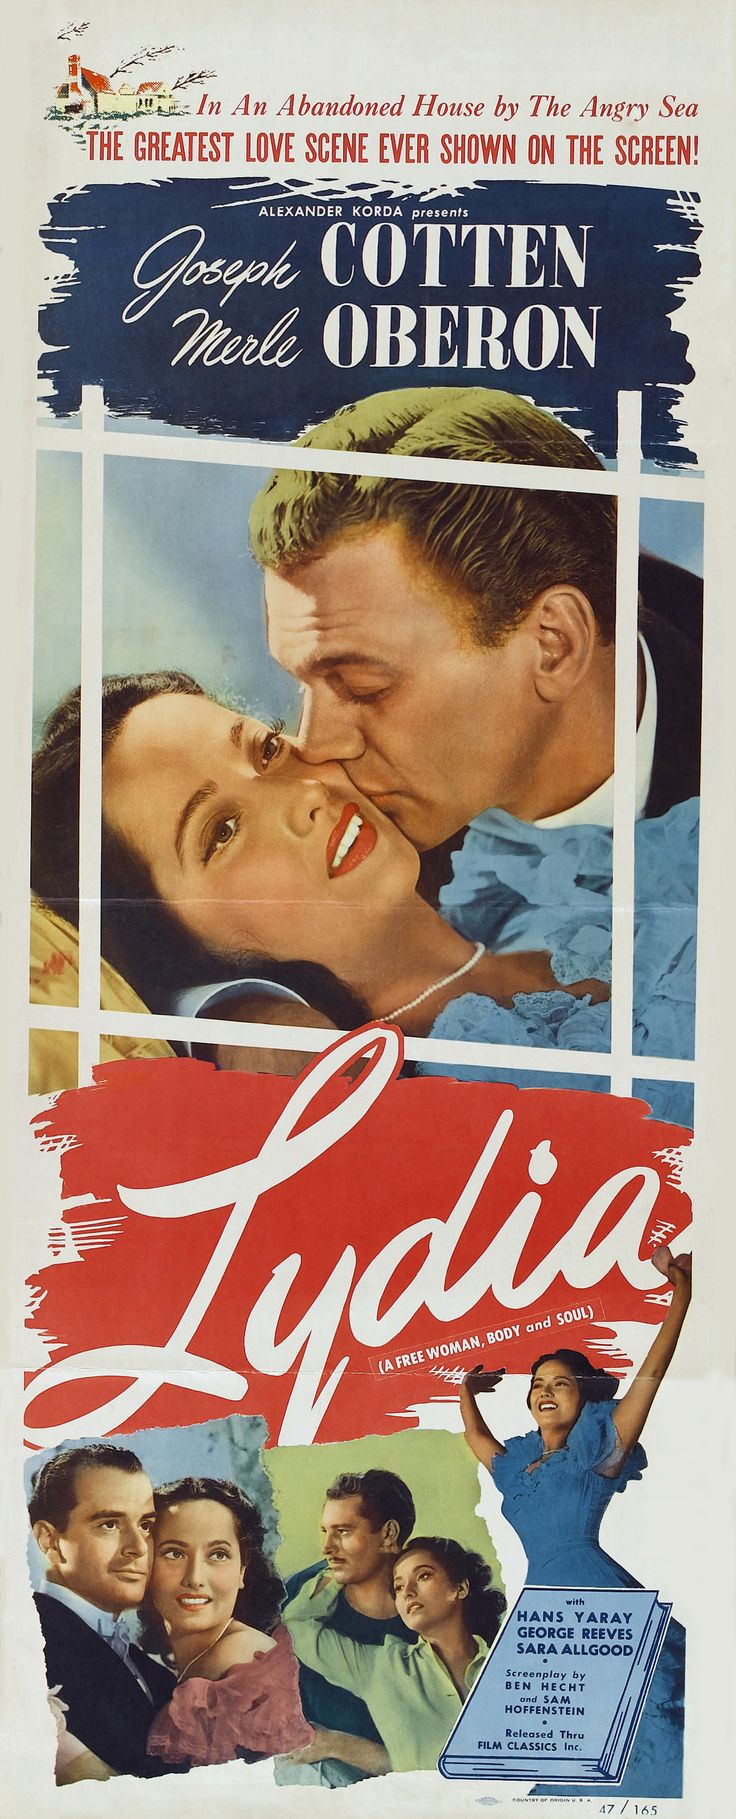 Lydia (1941) Merle Oberon, Edna May Oliver, Alan Marshal, Joseph Cotten, George Reeves